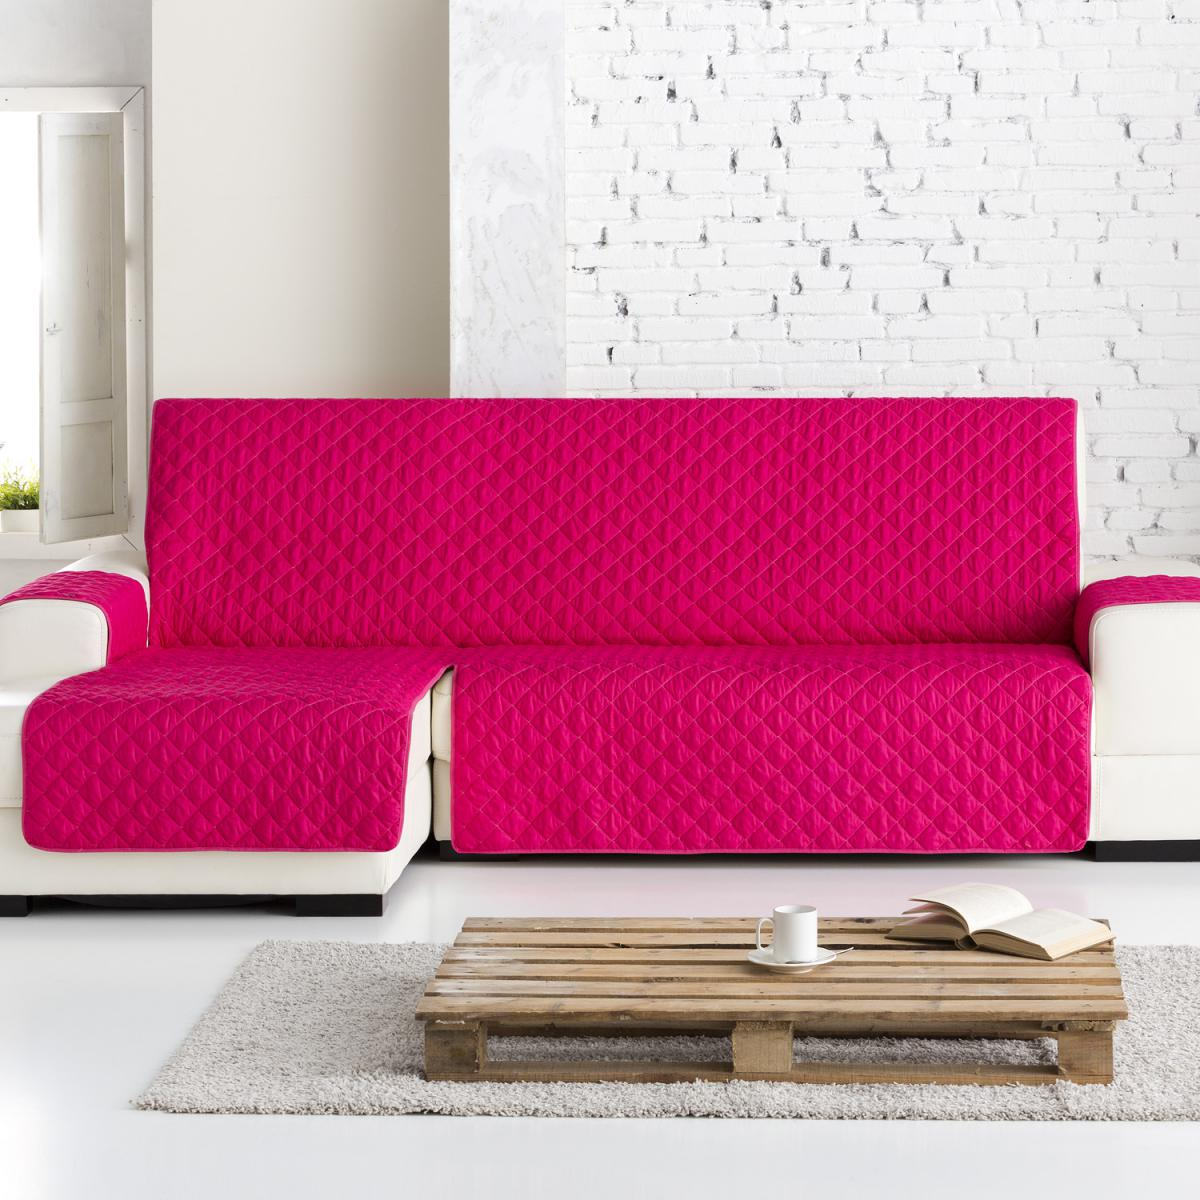 FUNDA DE SOFA PRÁCTICA DUAL QUILT color 02 4 plazas color 02 3 plazas color 02 2 plazas